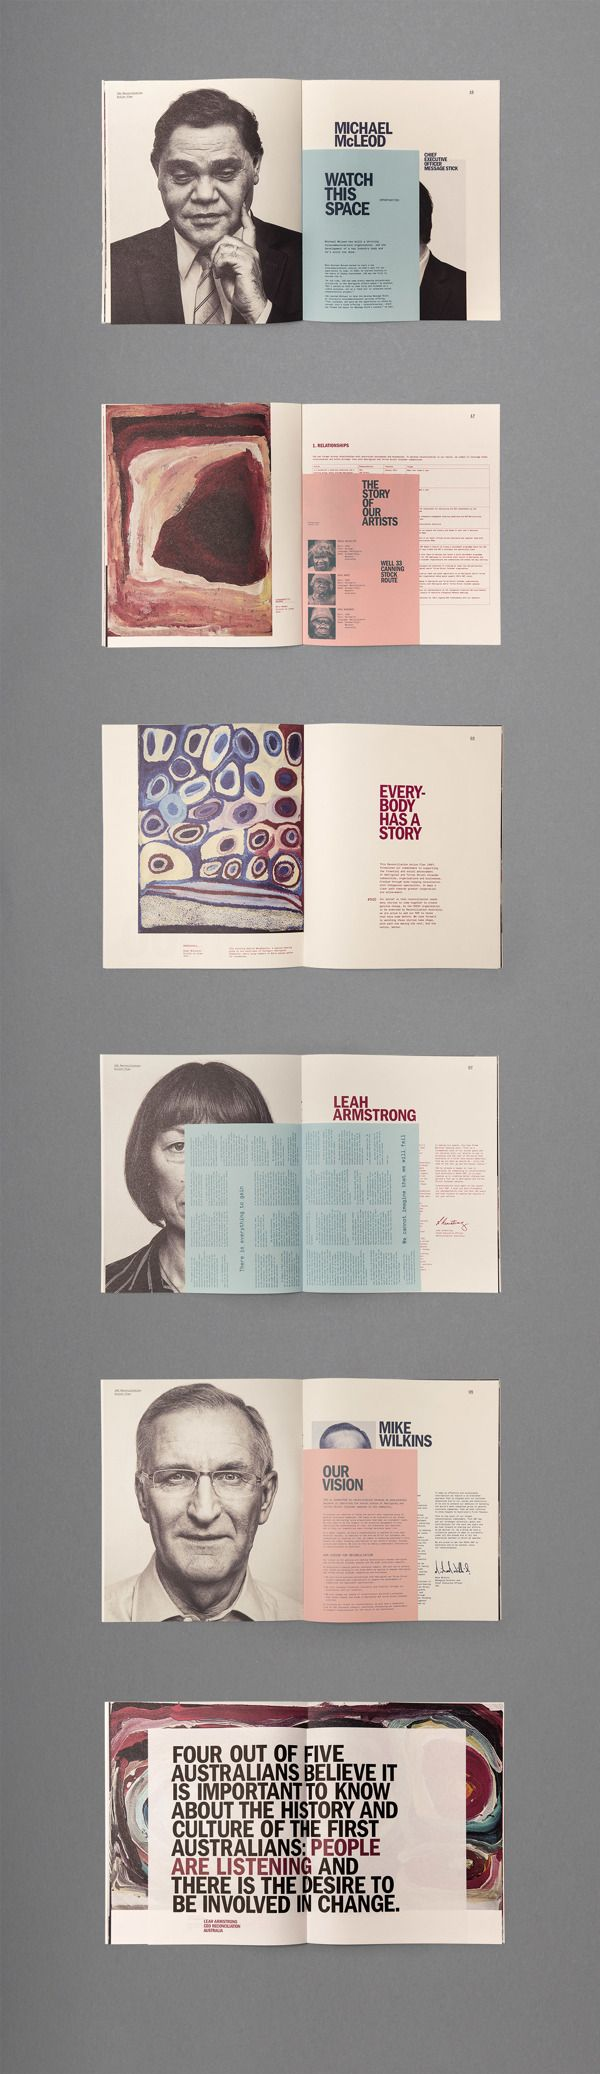 IAG Reconciliation Action Plan by Jason Little, via Behance